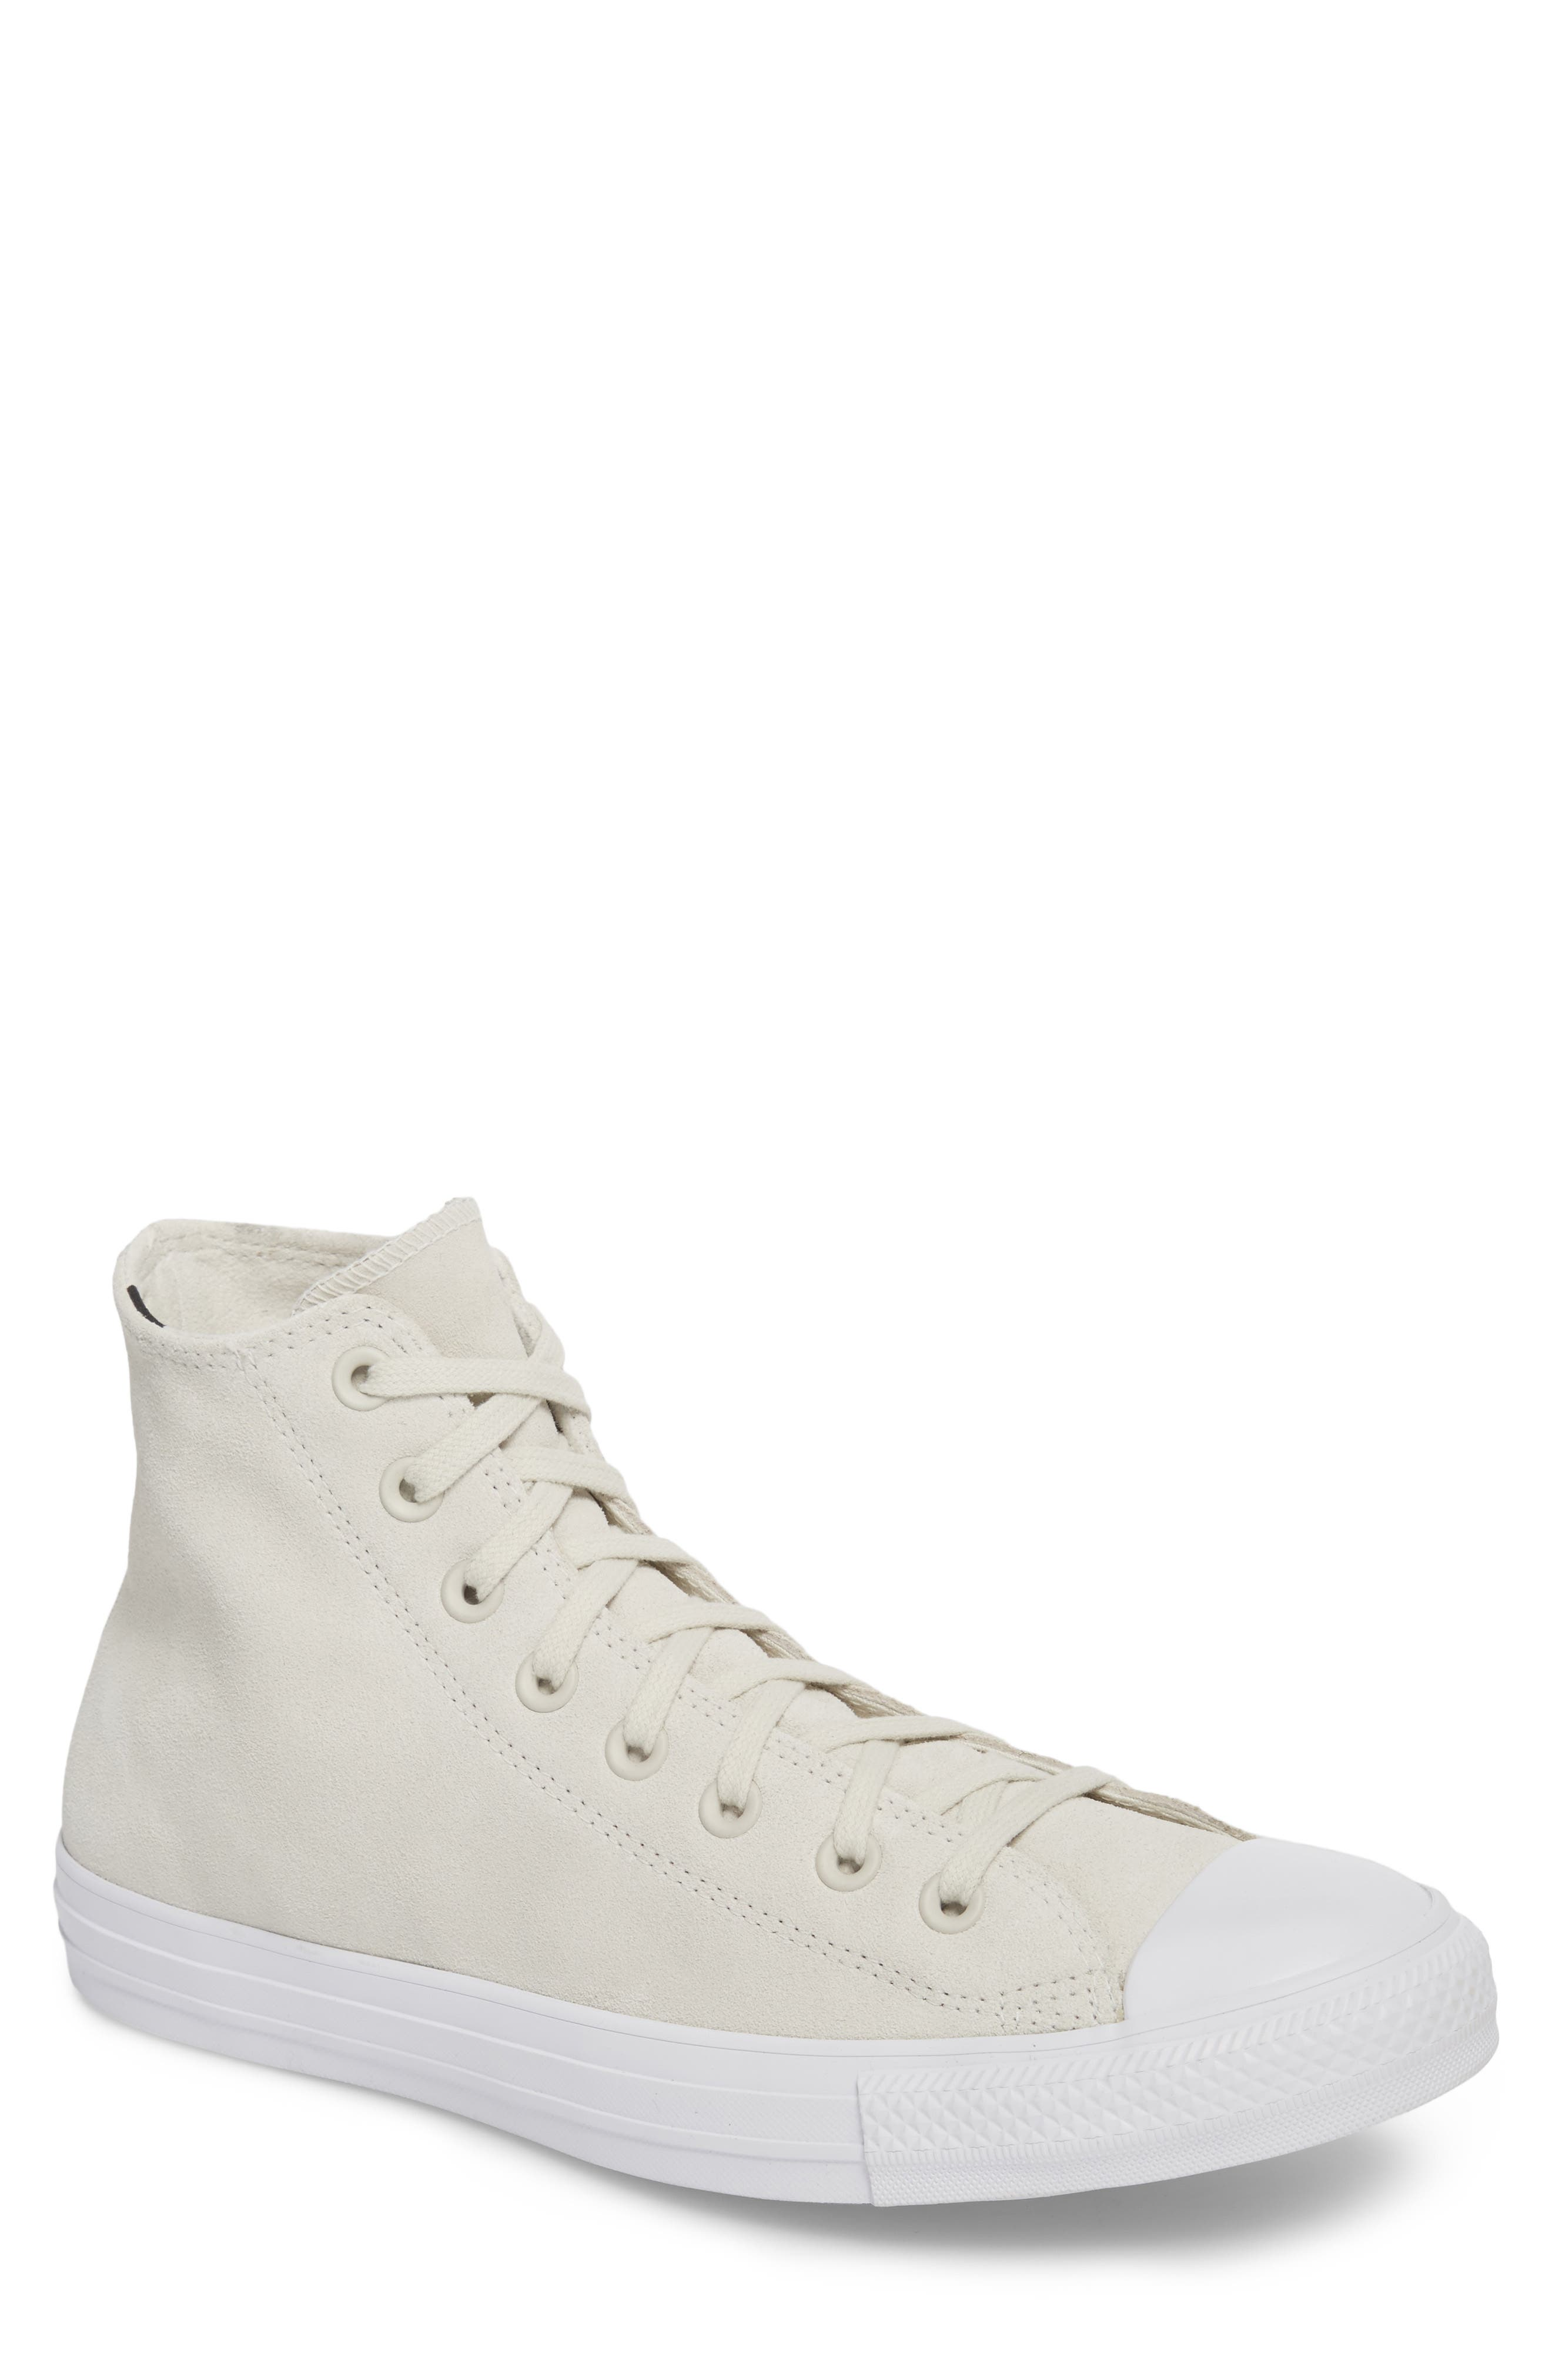 Chuck Taylor<sup>®</sup> All Star<sup>®</sup> Plush Hi Sneaker,                         Main,                         color, Buff Suede